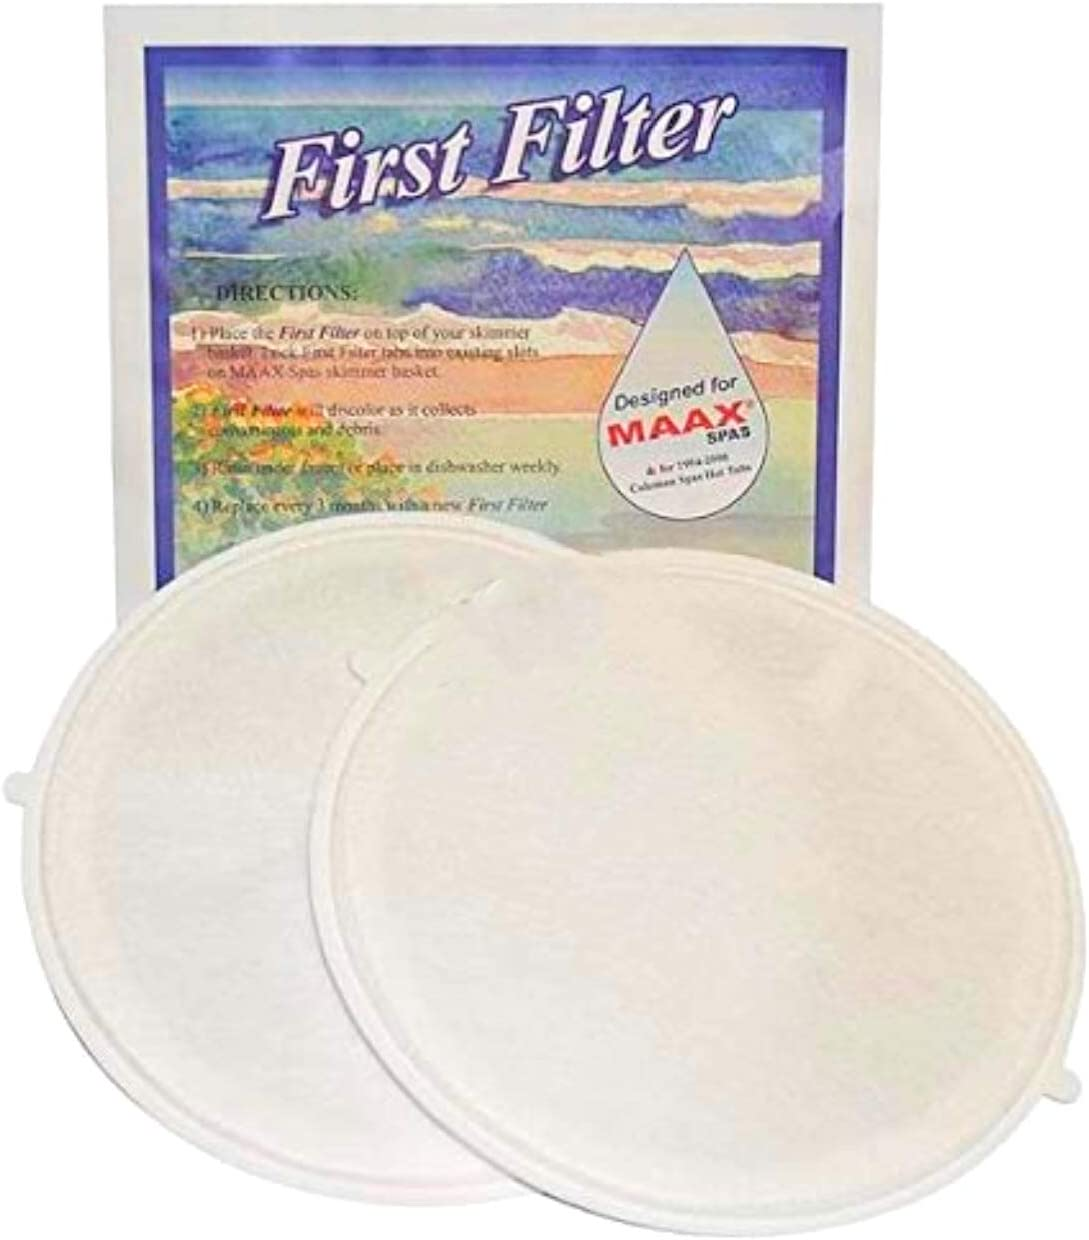 Hot Tub Classic Parts First Filter Maax/Coleman Spas Firstfilter-1